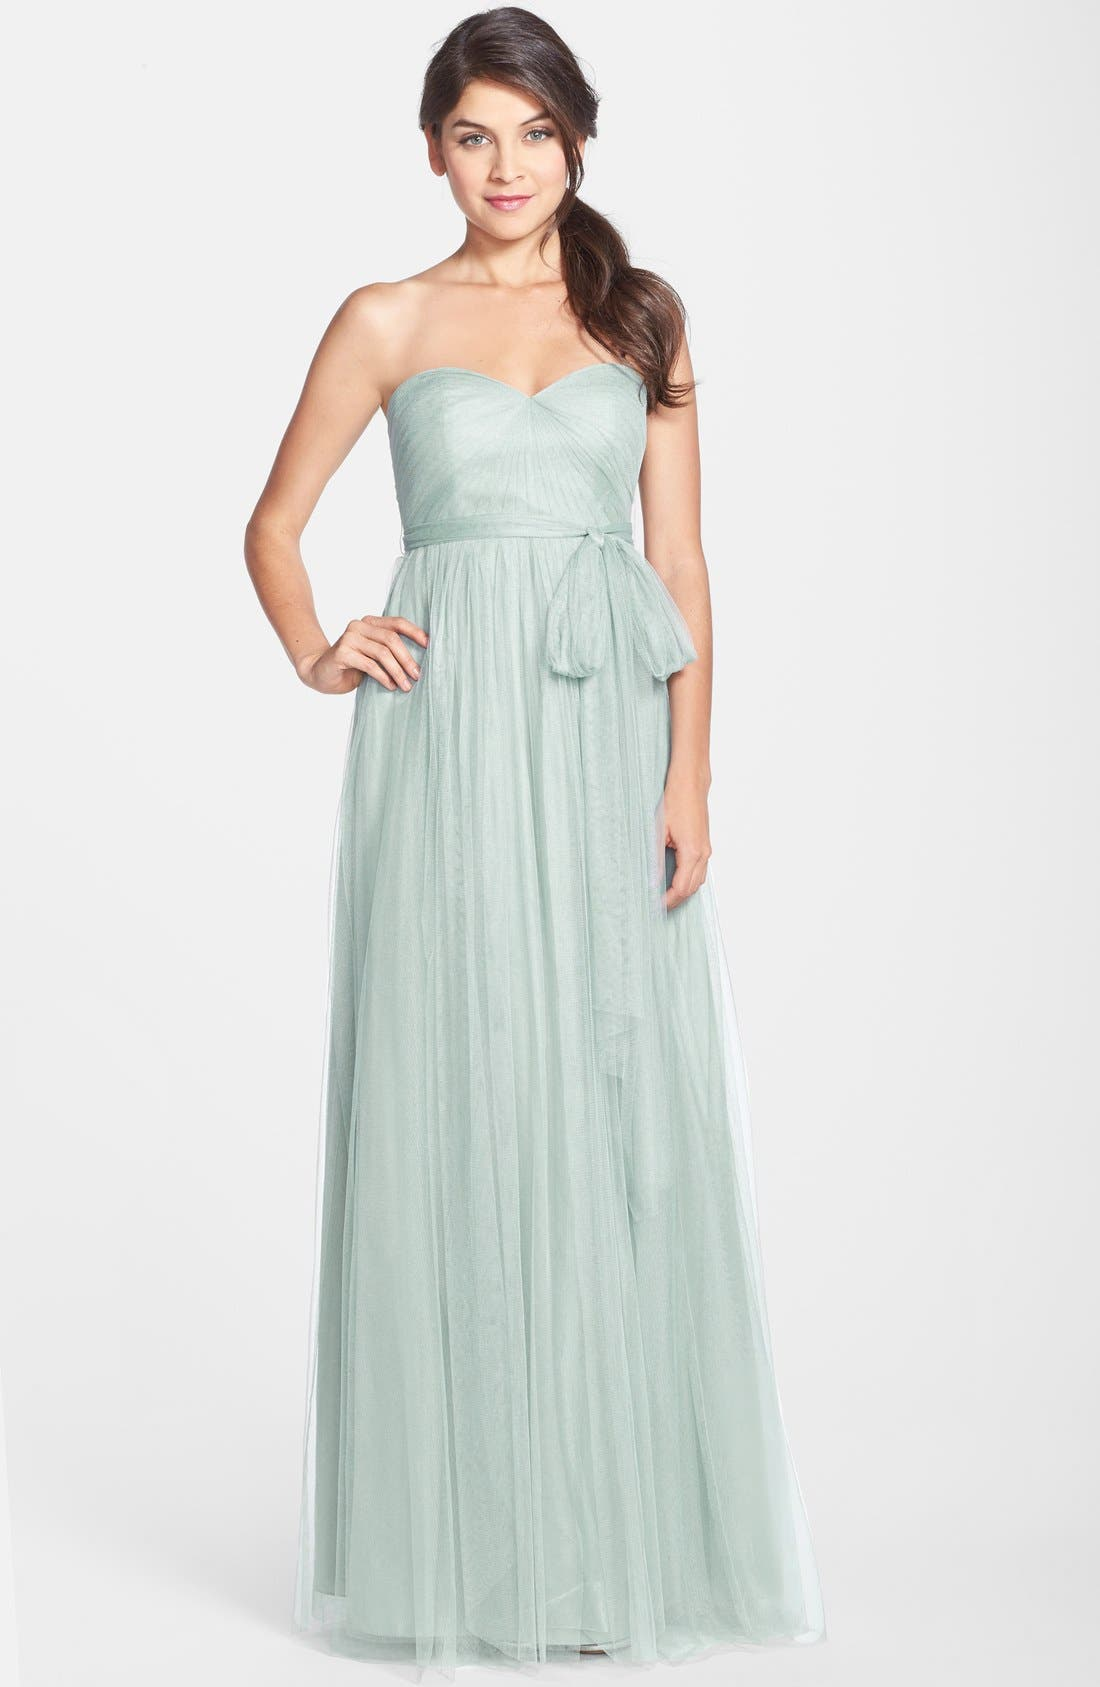 Jenny Yoo Annabelle Convertible Tulle Column Dress, 8 (similar to 1) - Blue